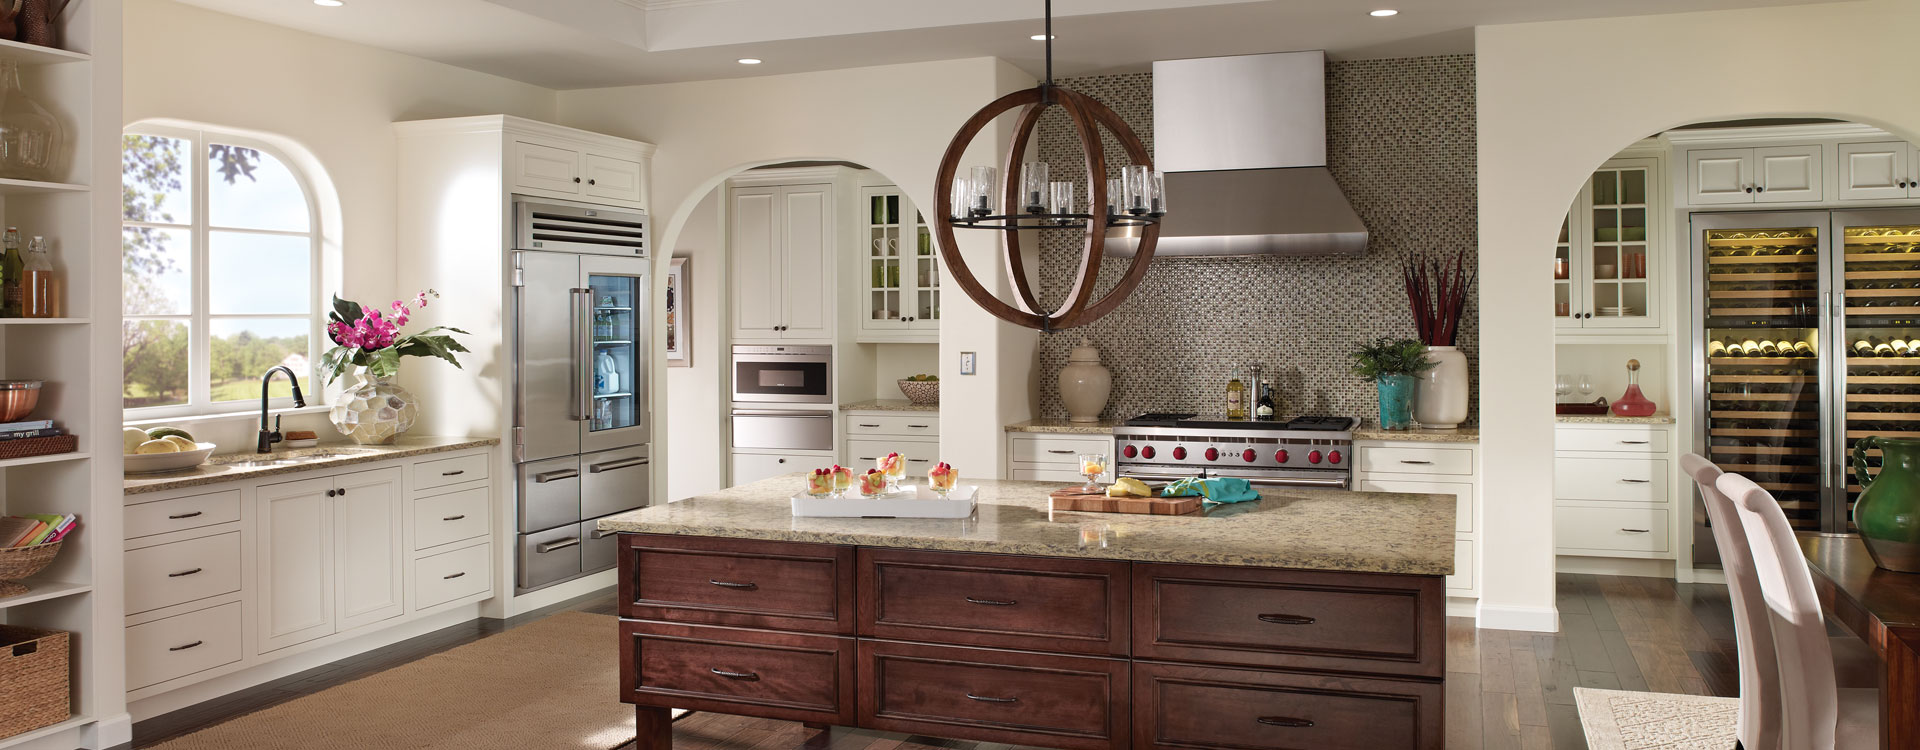 Chesapeake Kitchen Wholesalers Kitchen Design And Remodeling